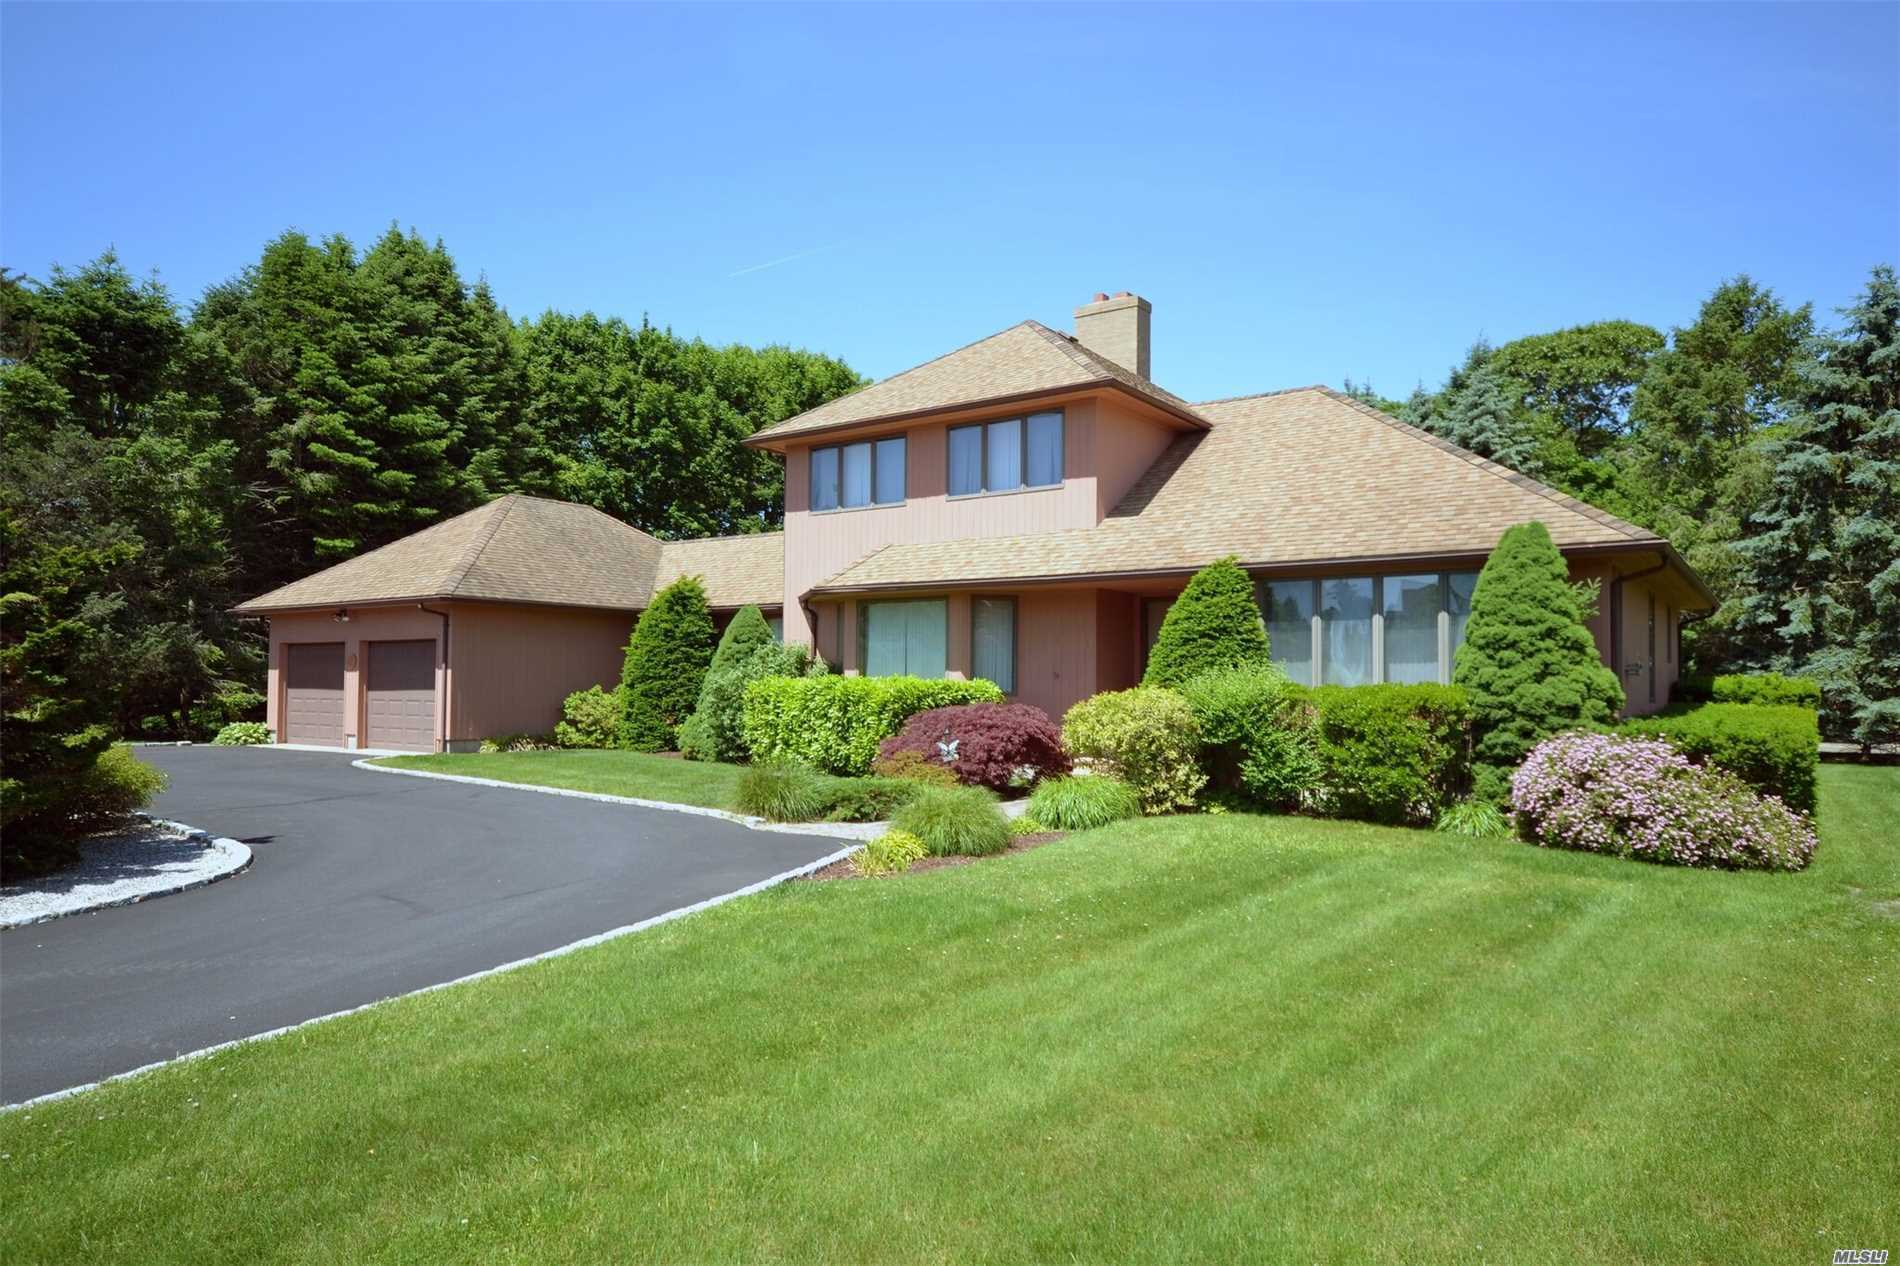 Elegant Contemporary In Sea Cove Estates. Spacious Custom Home With Open Floor Plan. Vaulted Ceilings, Hardwood Floors,  Fireplace, Fabulous Screened In Porch & In Ground Pool. Seacove Bay Beach. Celebrate The Beauty Of The North Fork Here With Friends And Family. Enjoy The White Sandy Beach And The Osprey.